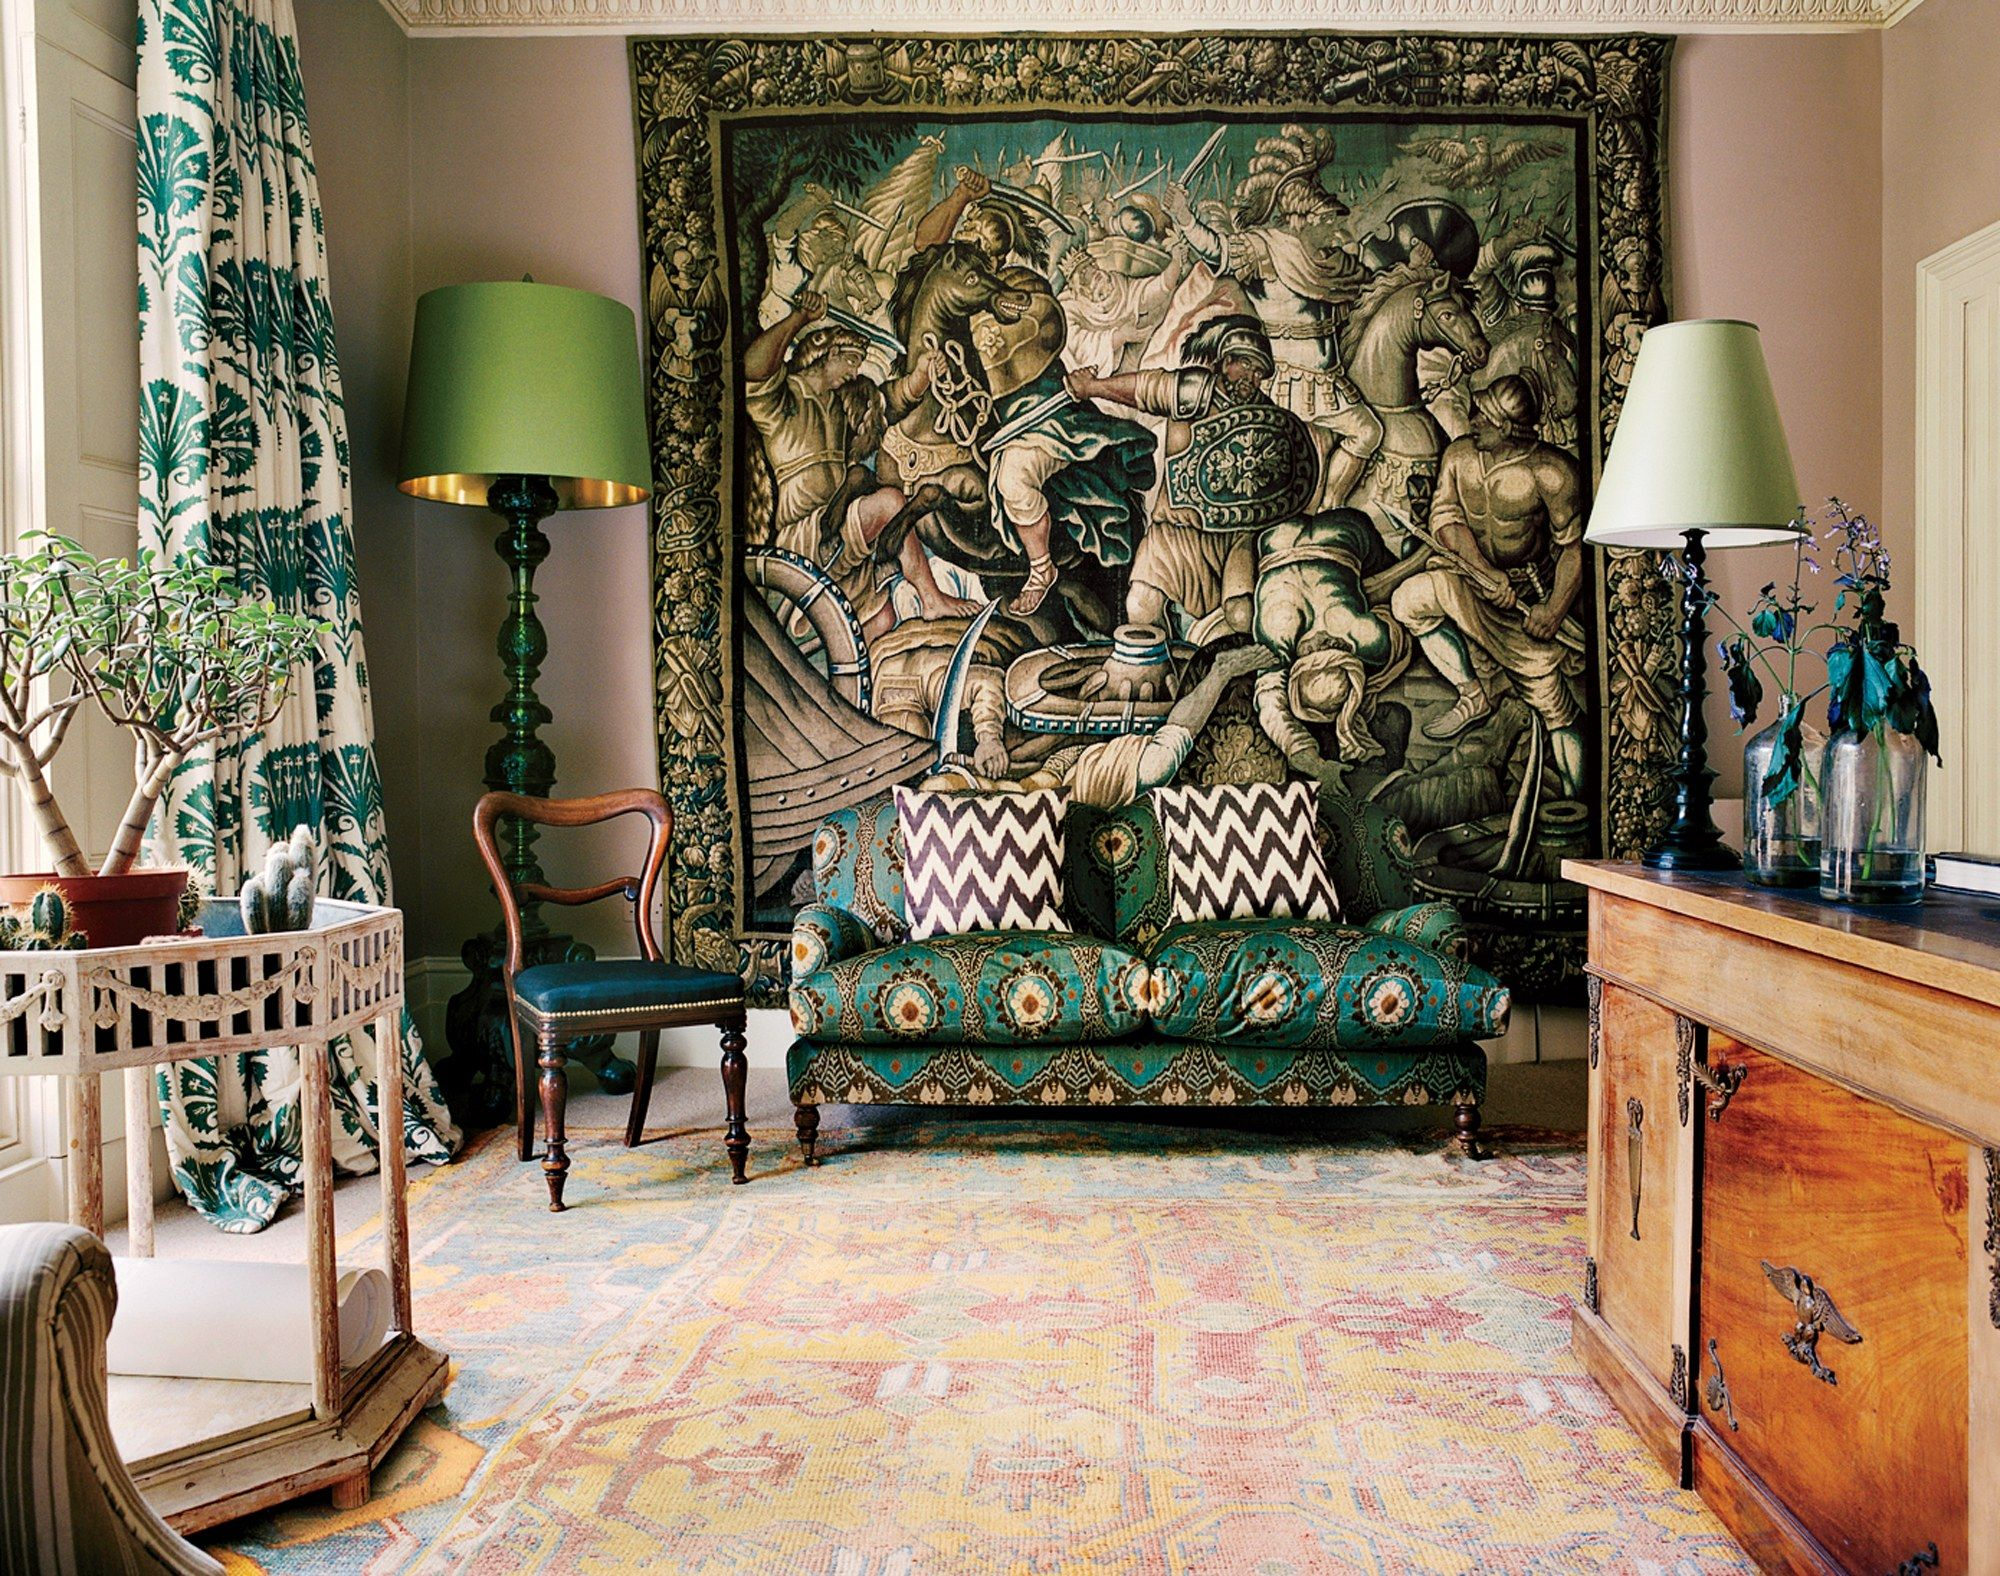 The Decorating Trends To Look For In 2017 Trending Decor